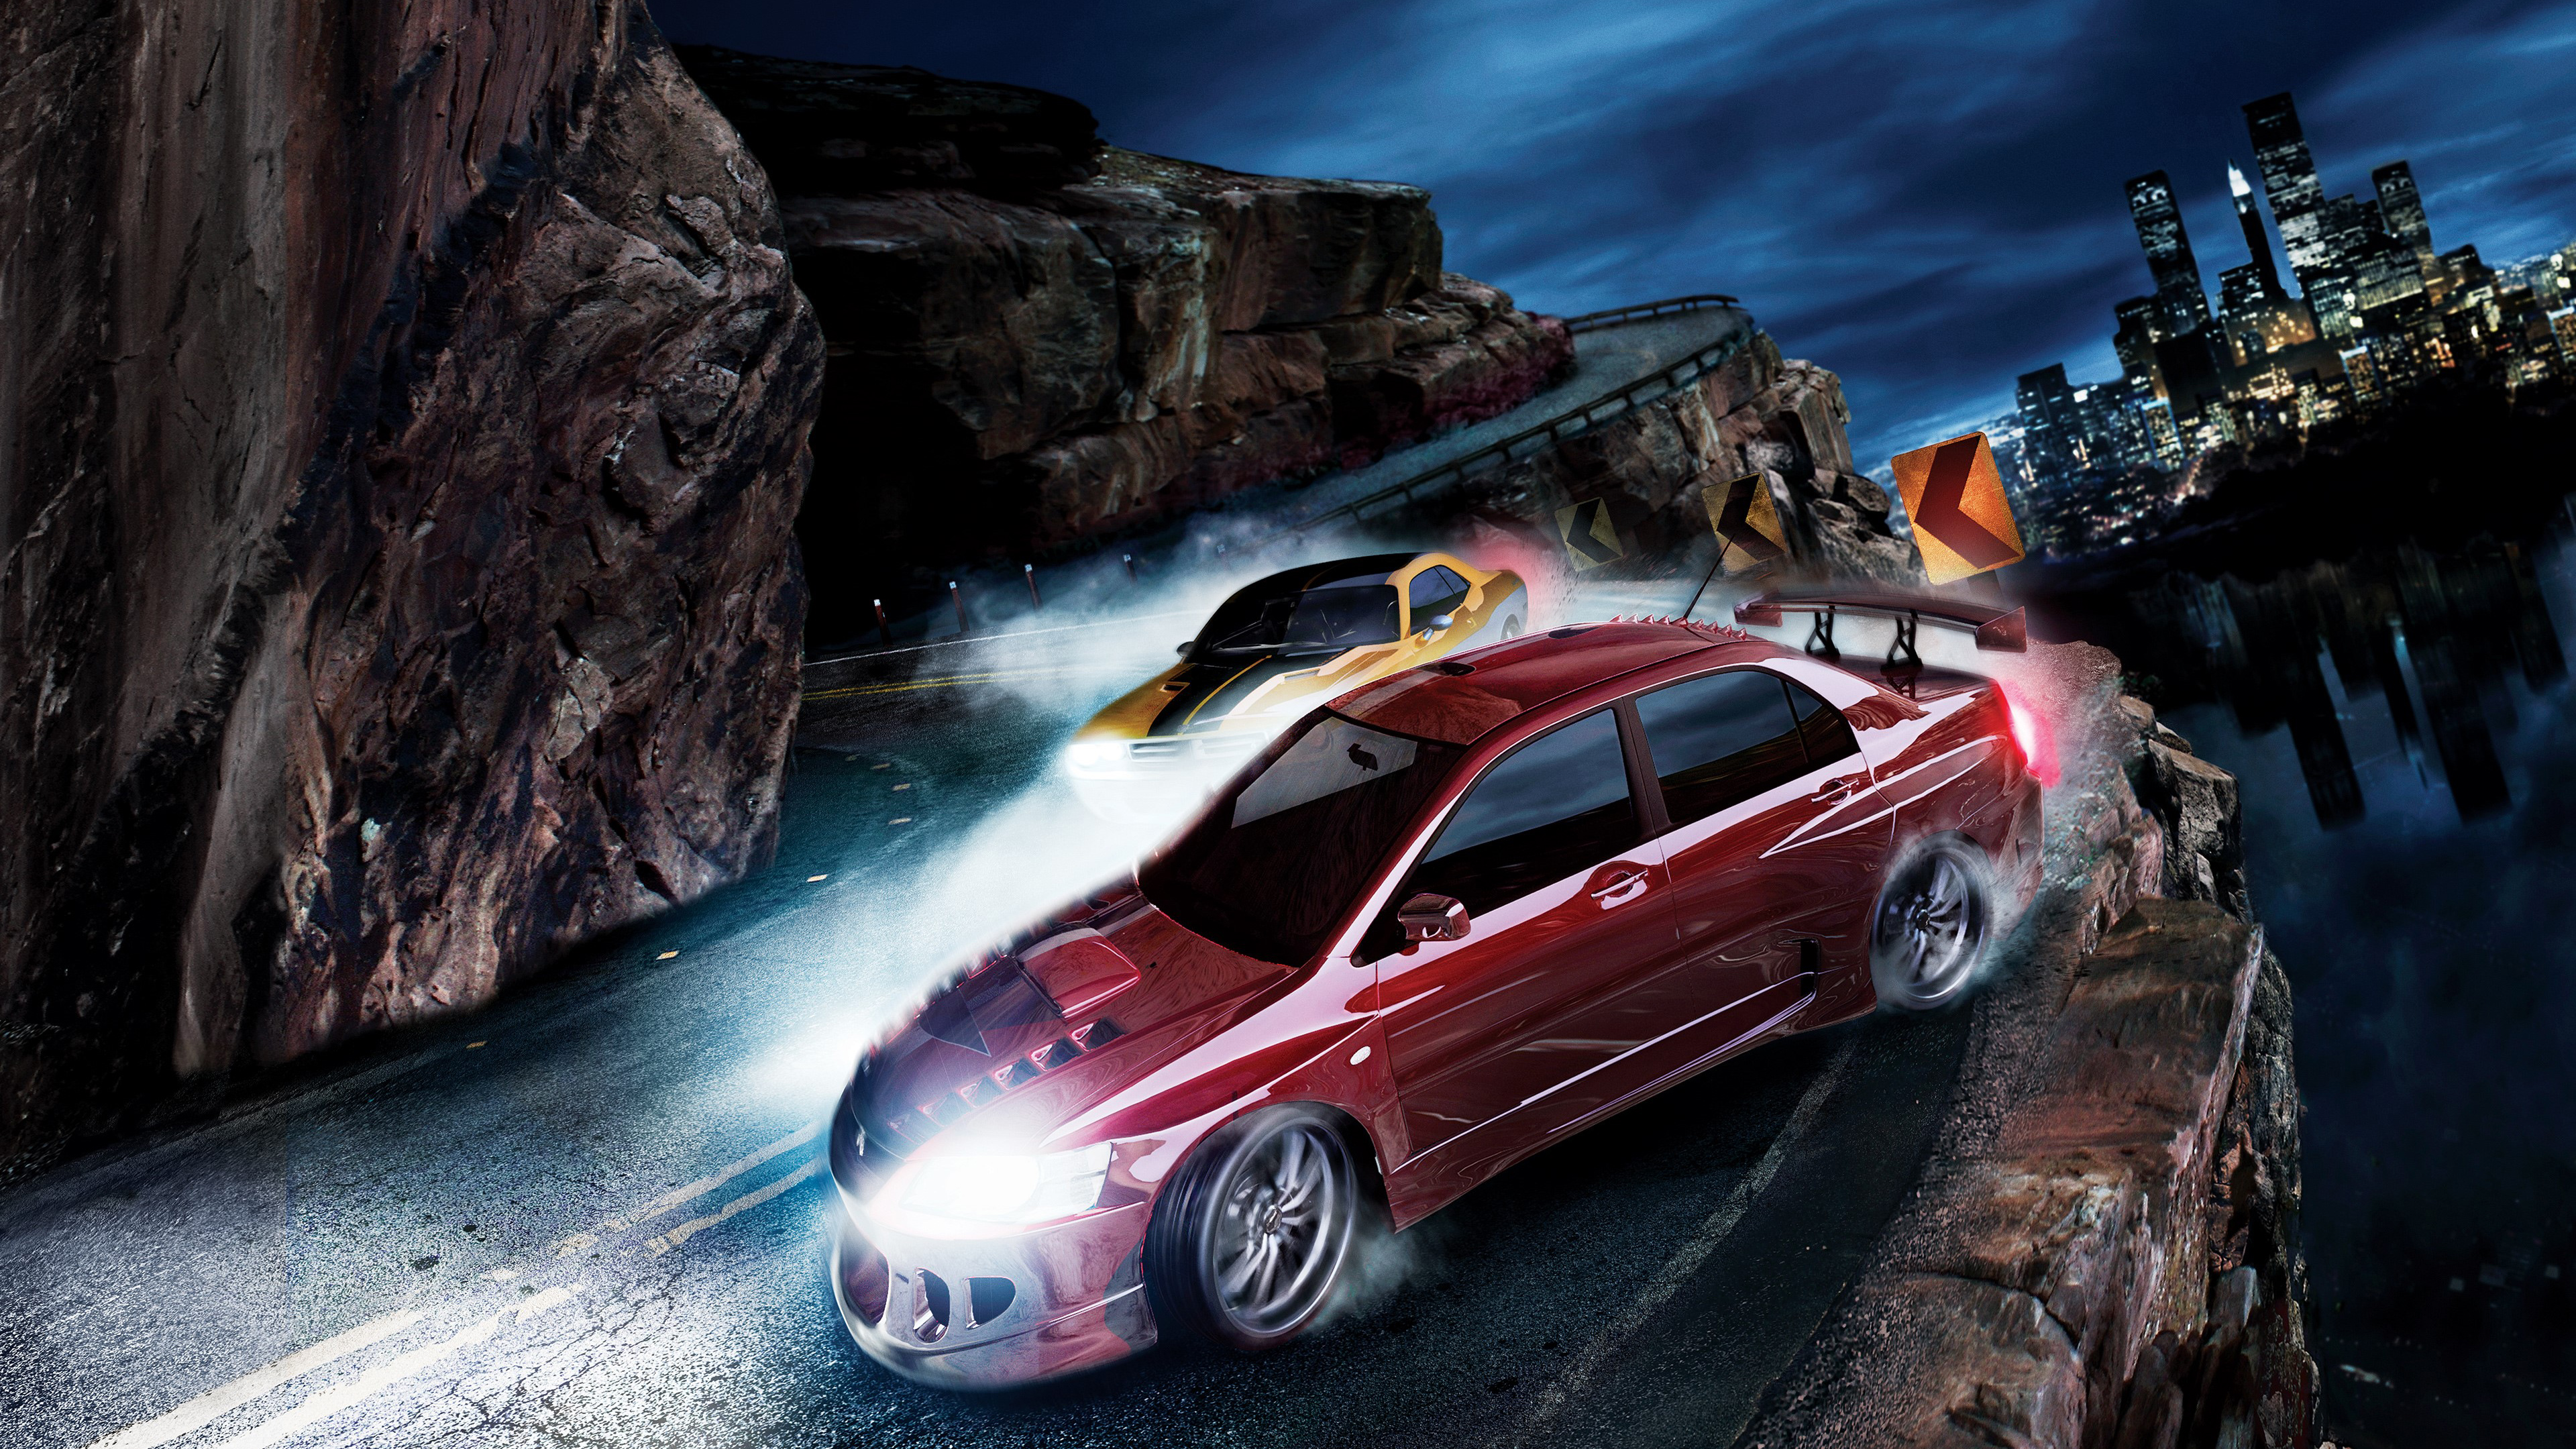 Wallpaper 4k Need For Speed Carbon 4k 4k Wallpapers Cars Wallpapers